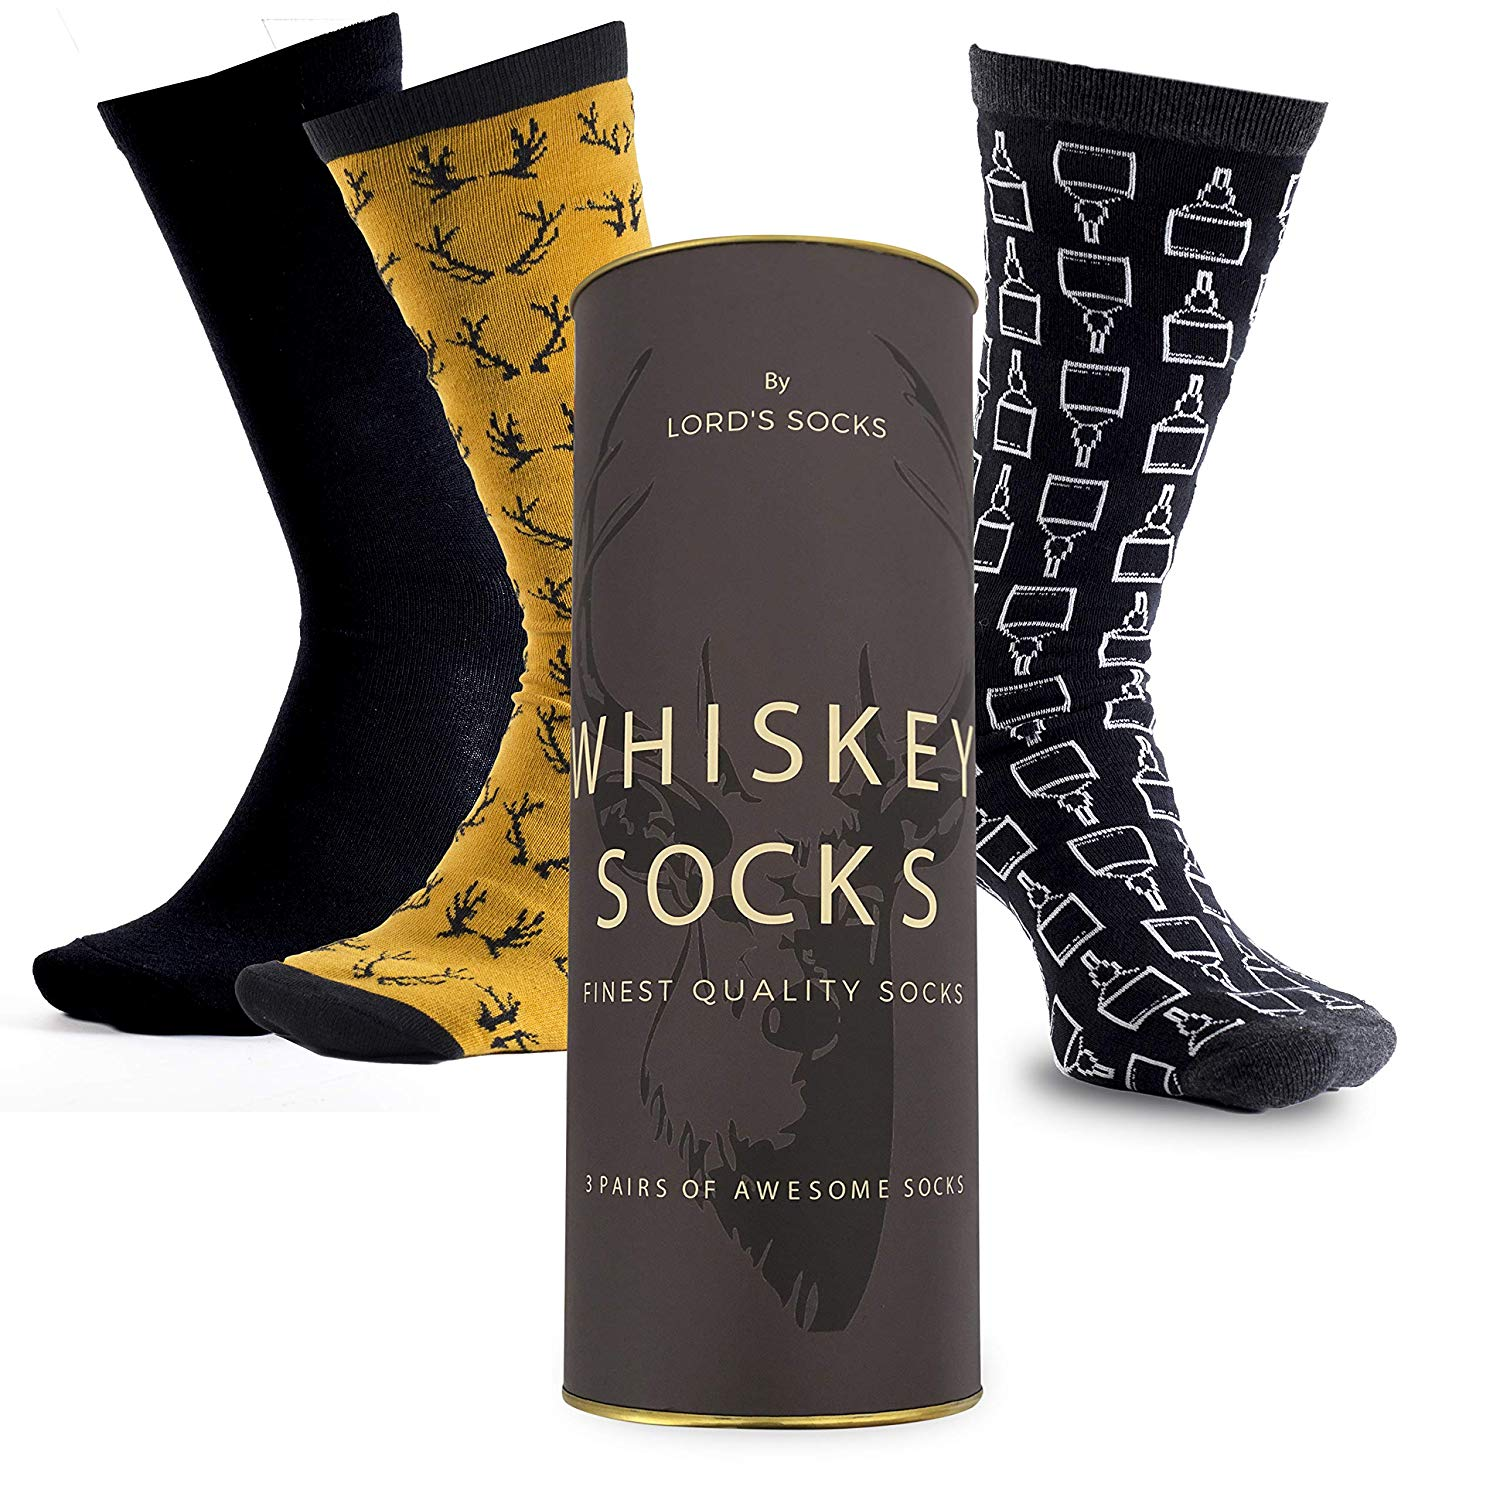 Bring Me A Scotch If You Can Read This .. Word Socks - Funny Socks - Novelty Socks